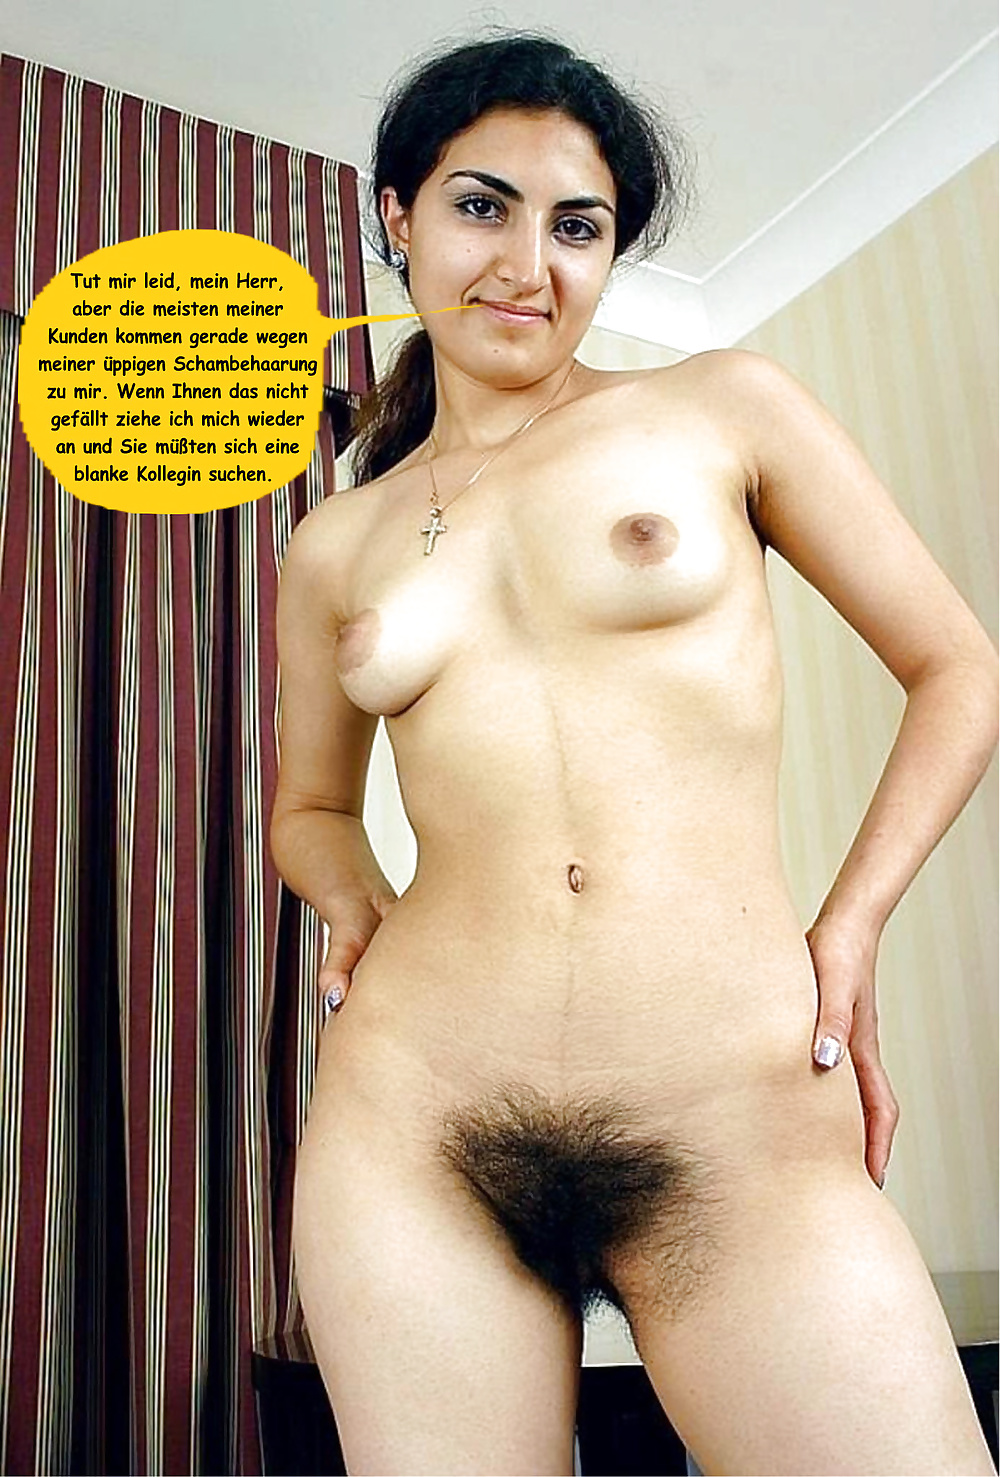 hairy-stomatch-kerala-woman-free-bittorrent-hentai